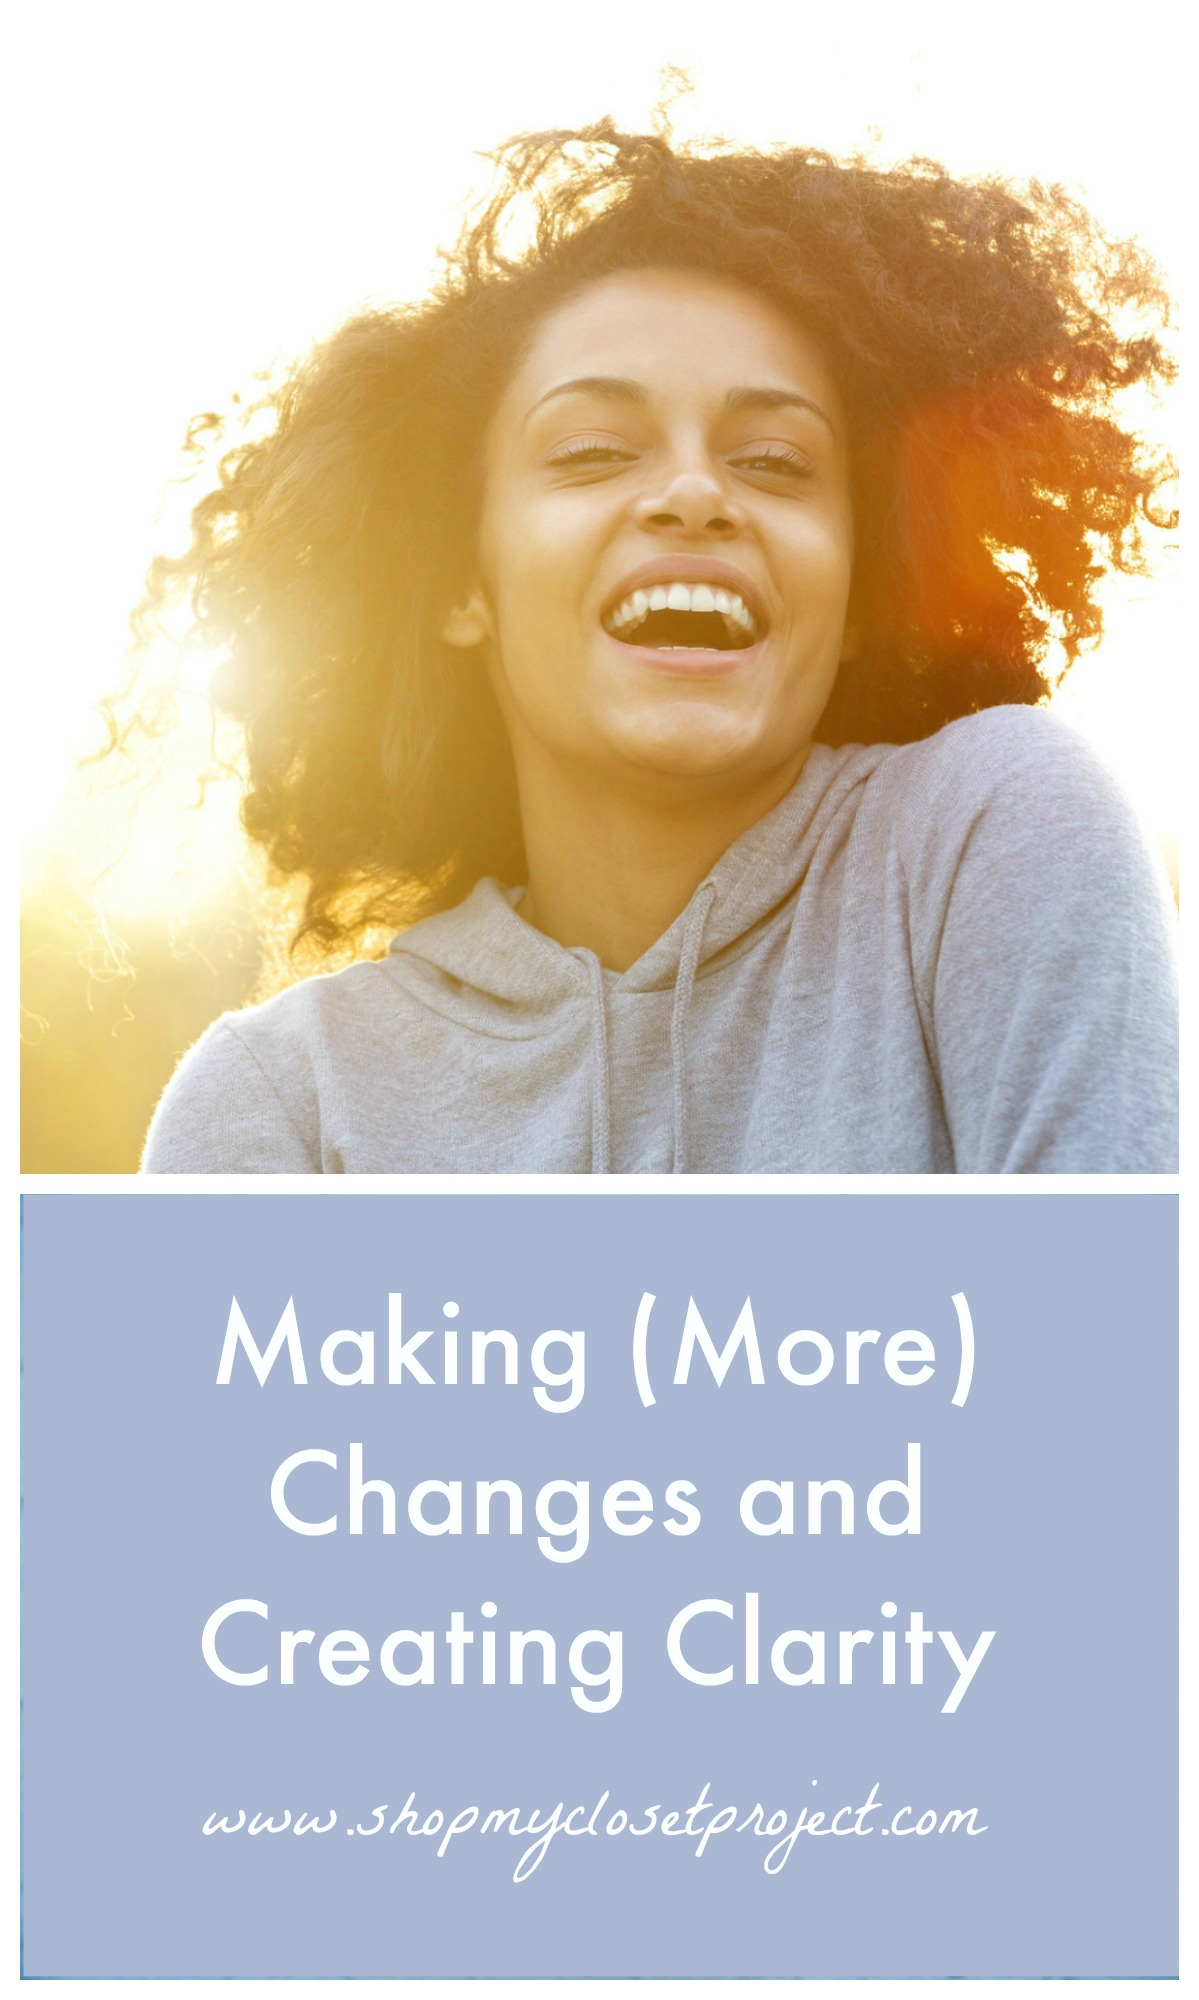 Making Changes and Creating Clarity